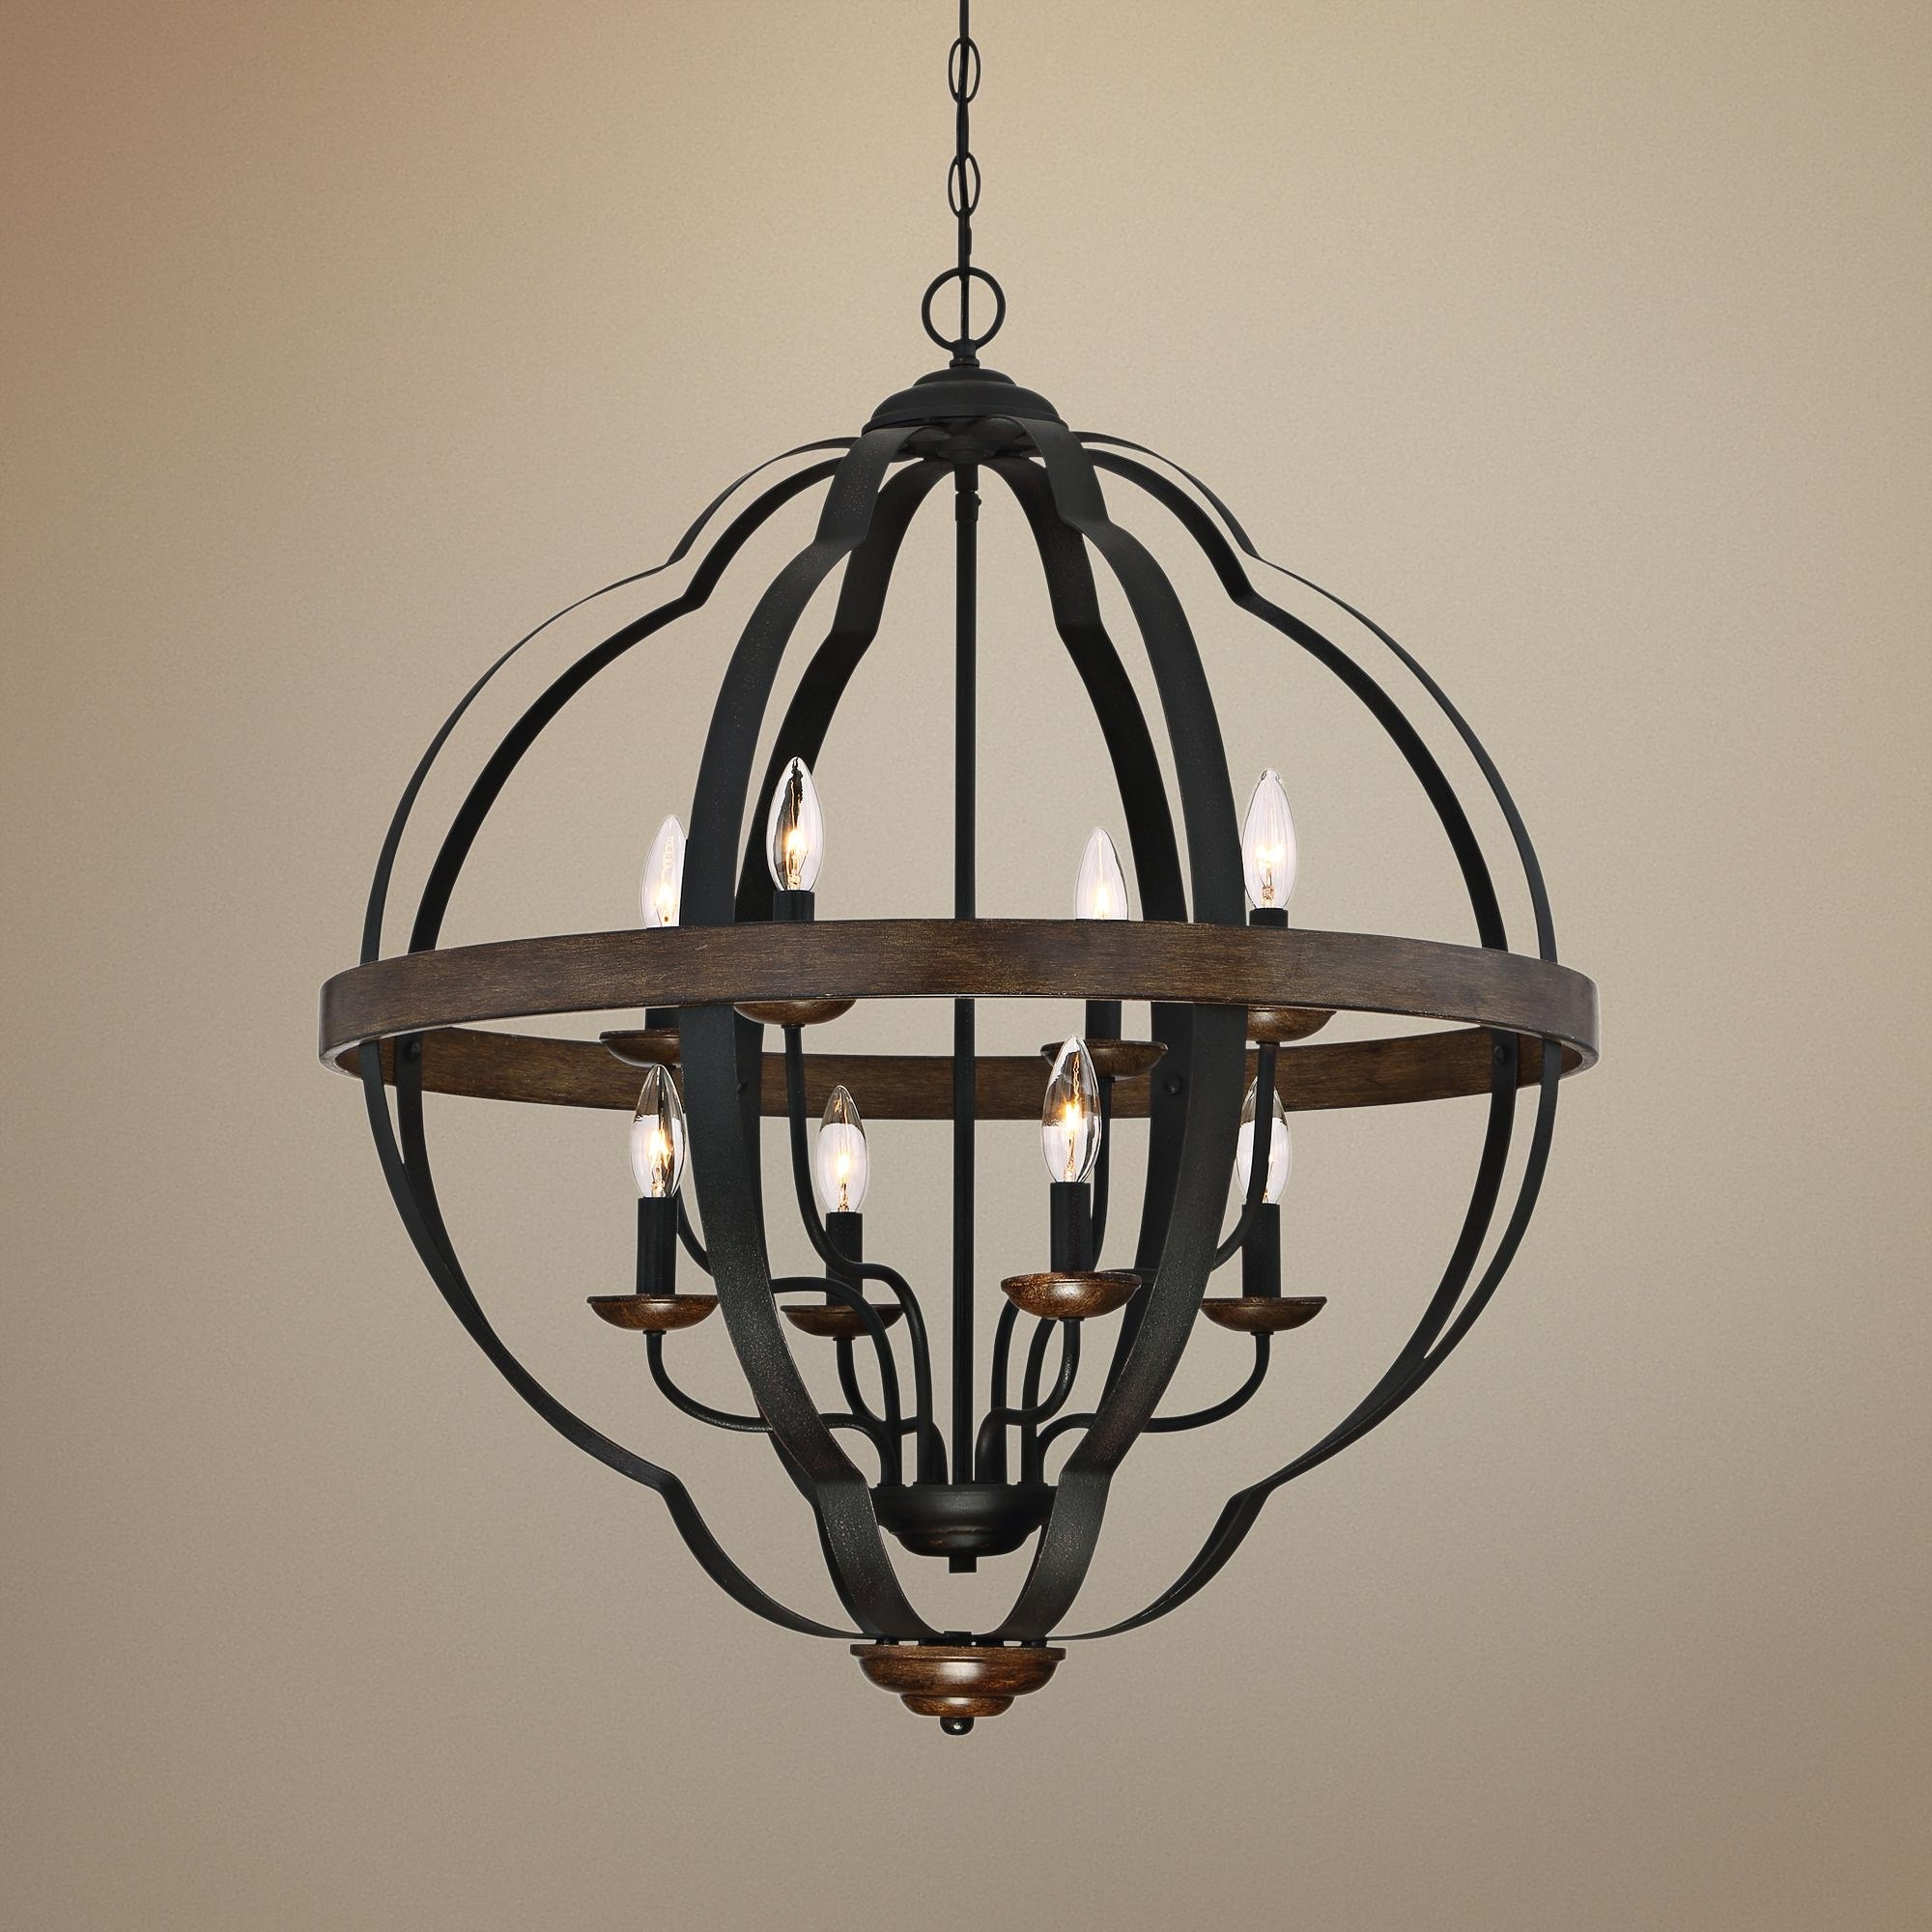 "Quoizel Siren 28""w 8 Light Black Metal Cage Foyer Chandelier (View 16 of 20)"